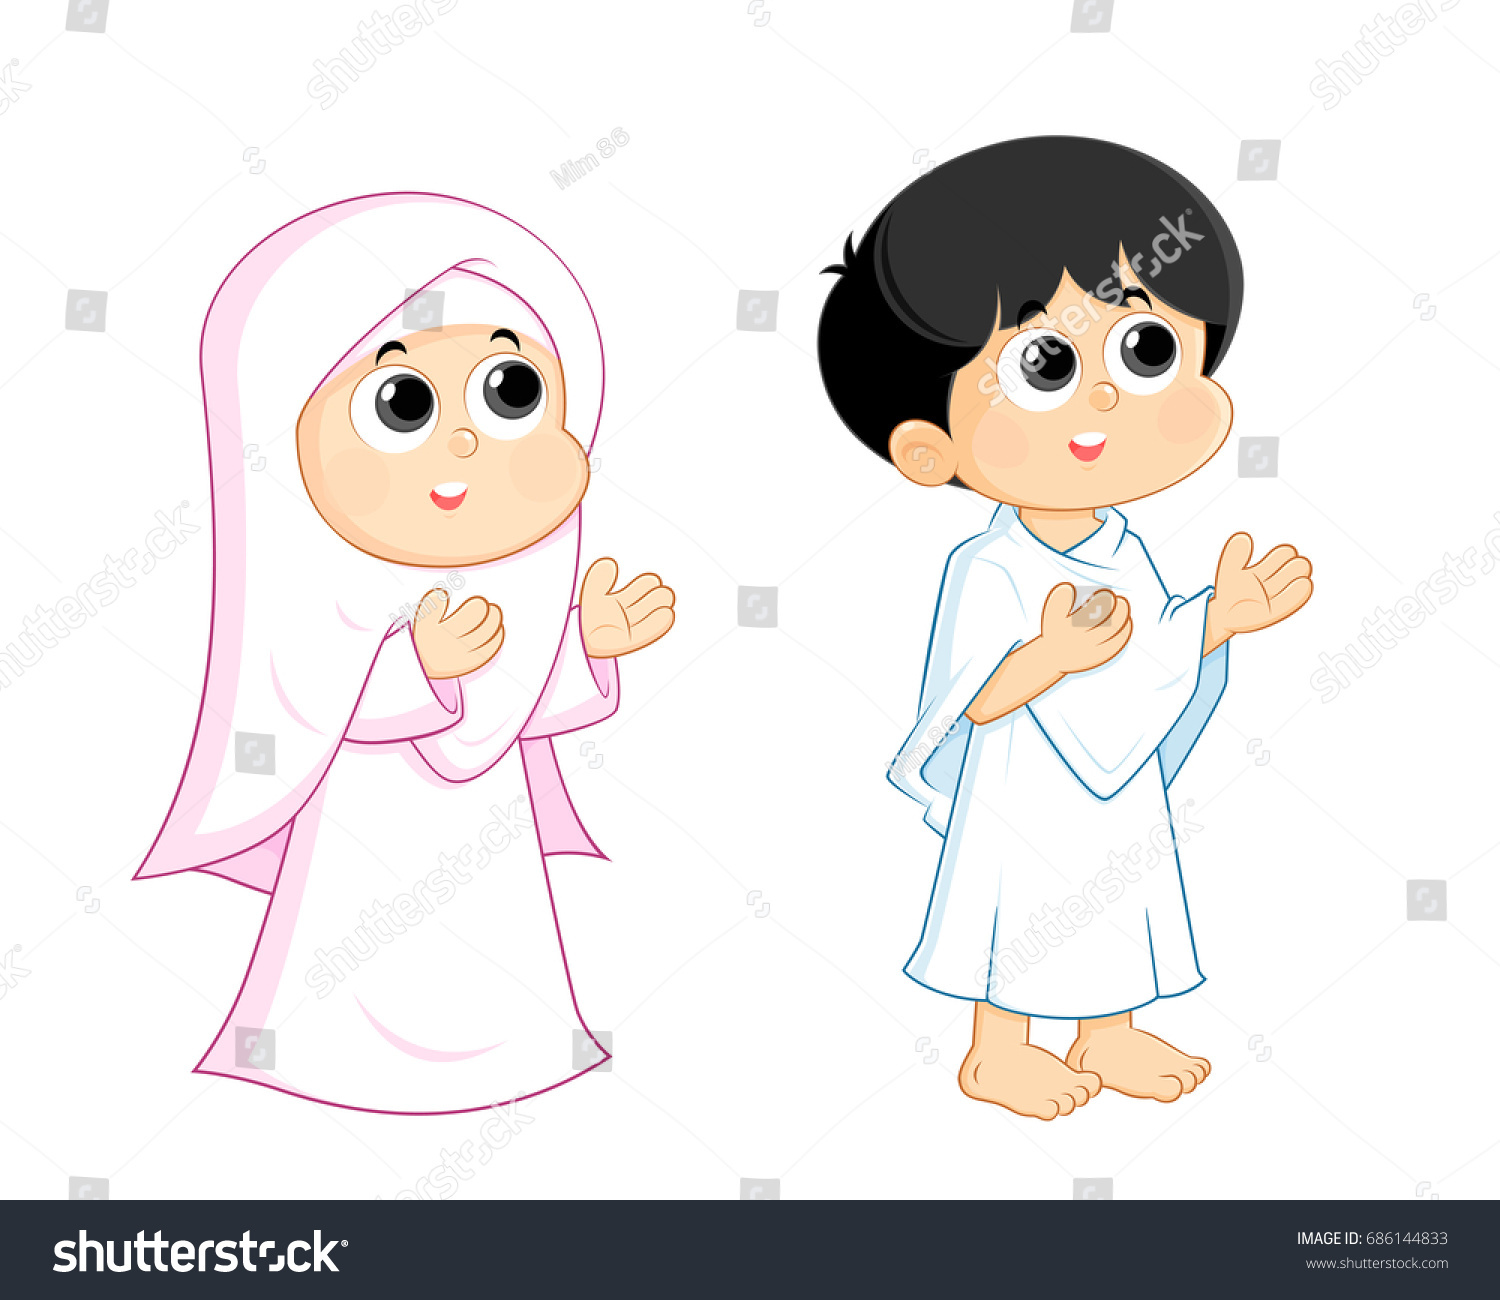 male muslim girl personals Durban female muslim personals  female seeking male 54 mk mk  caring loving modern girl with old school values ,loves out door activities add me.